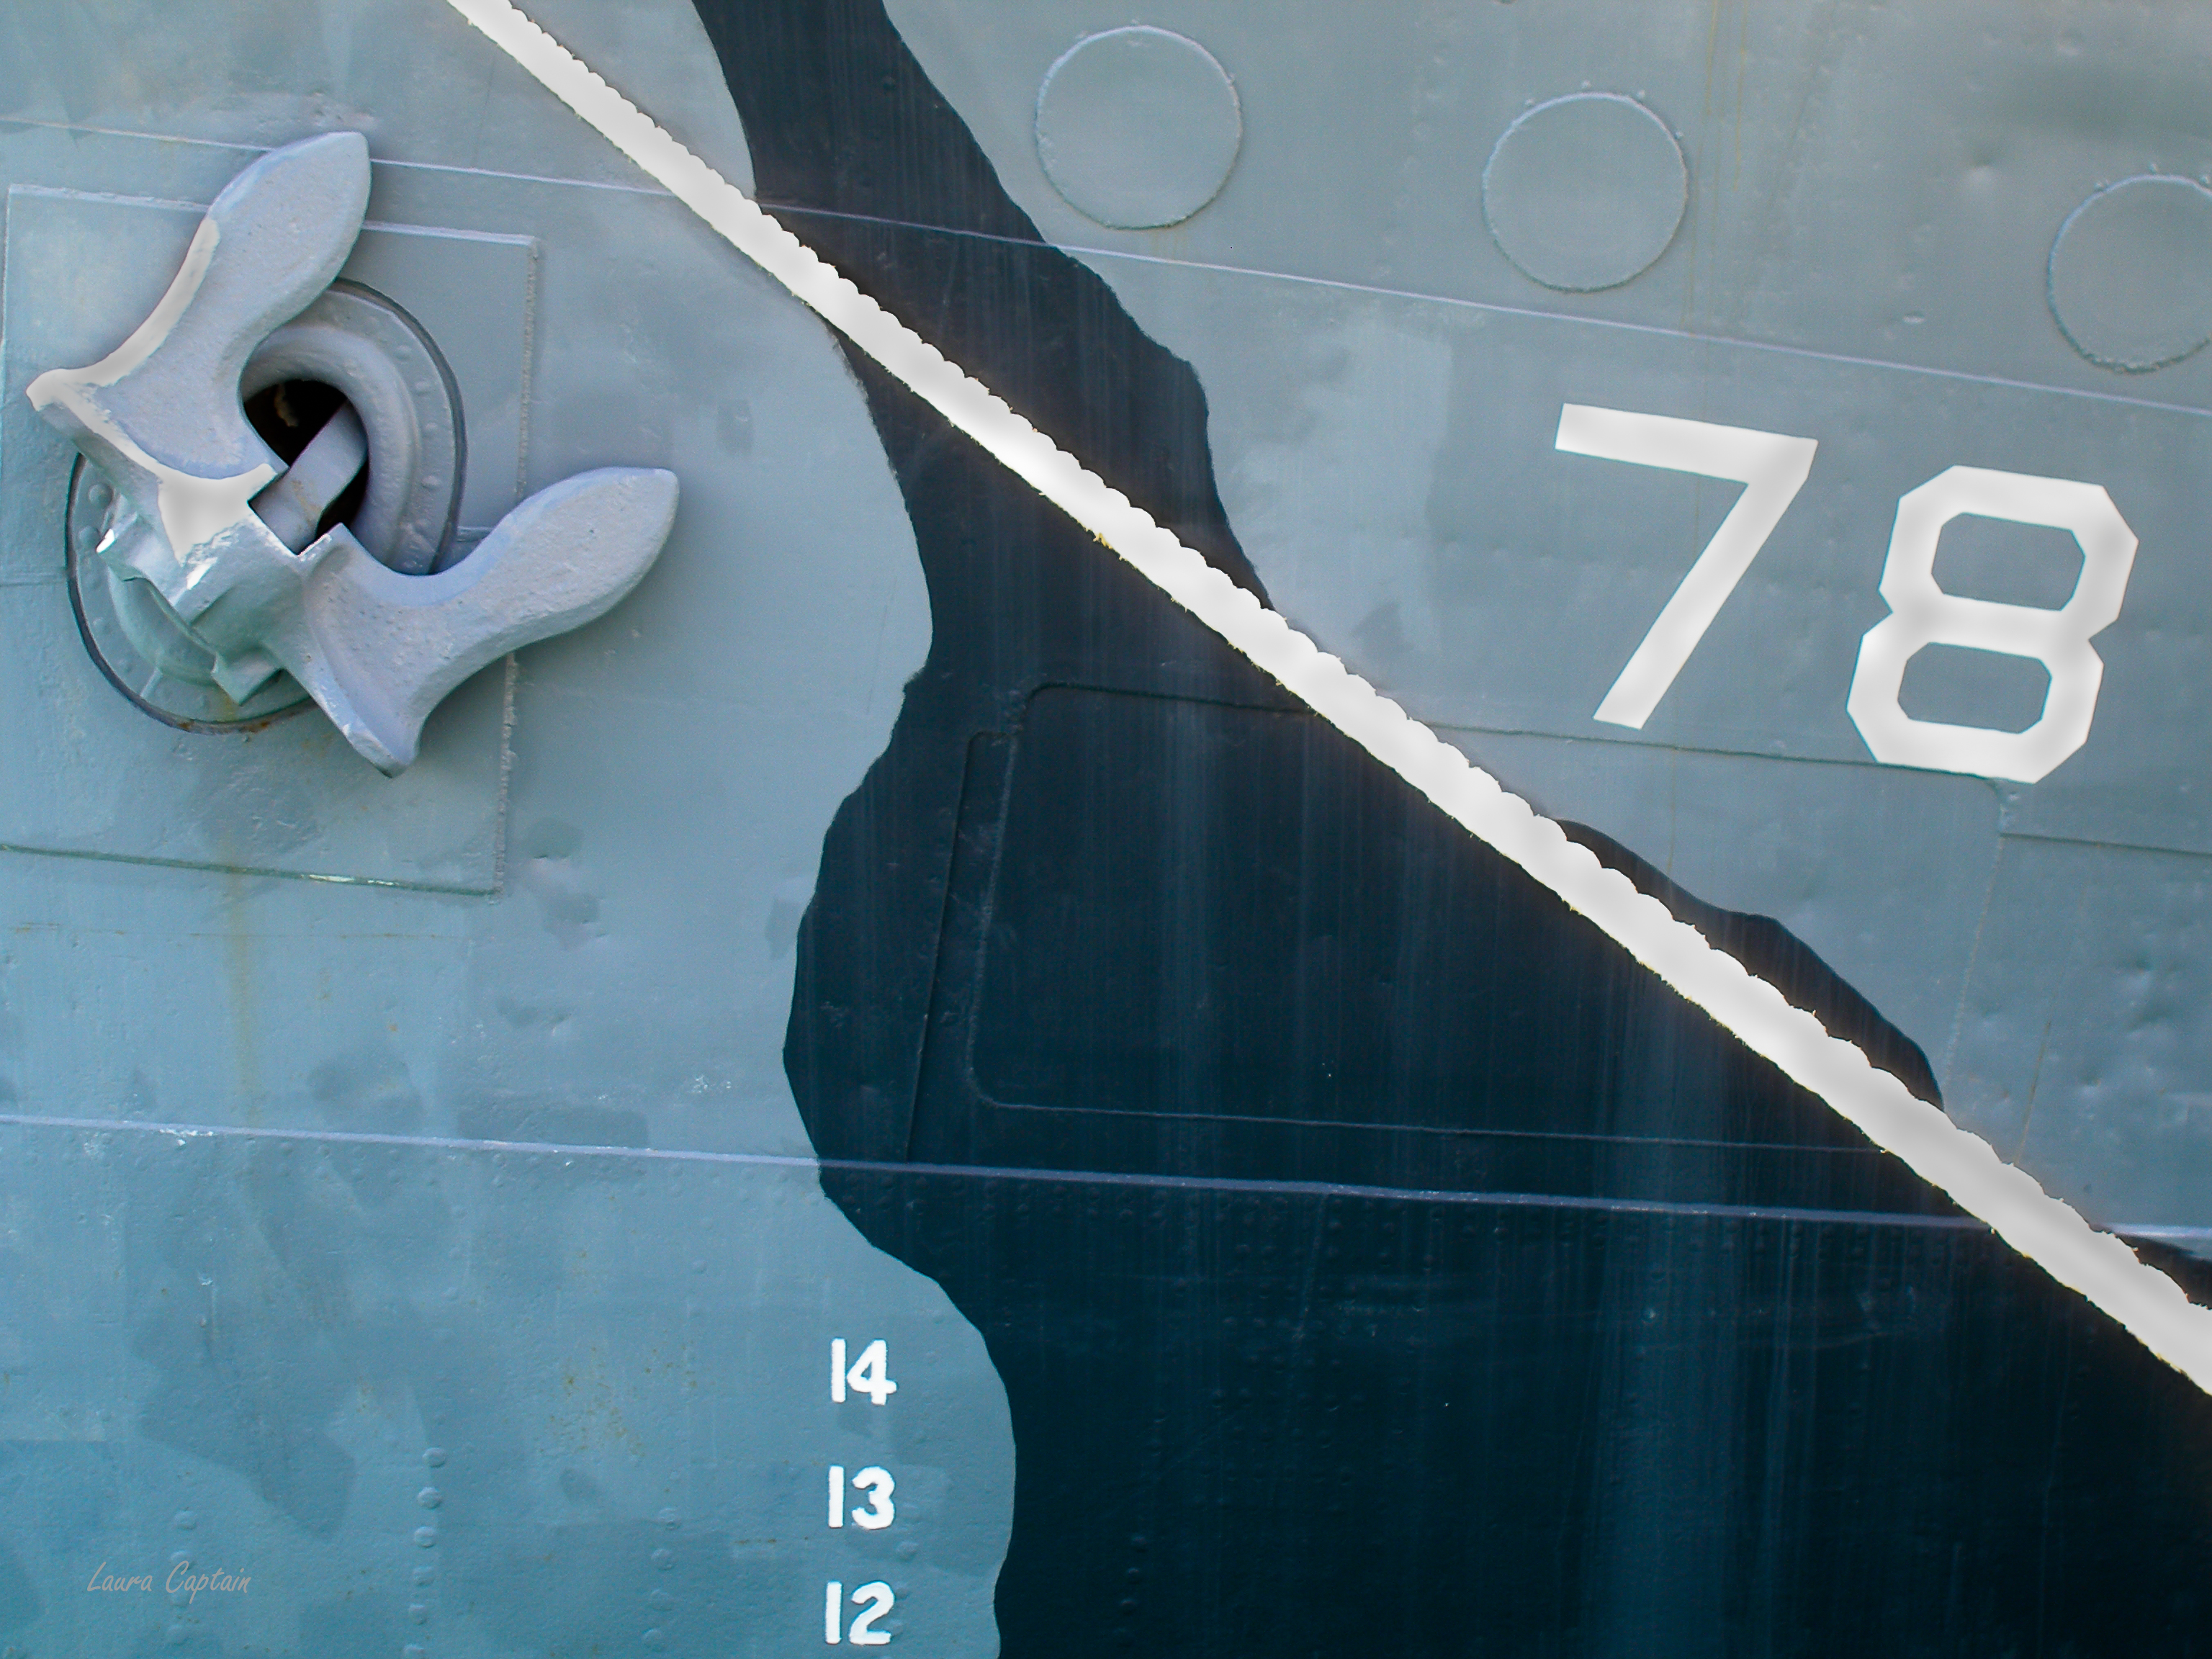 Navy Ship Closeup : anchor, rope, numbers